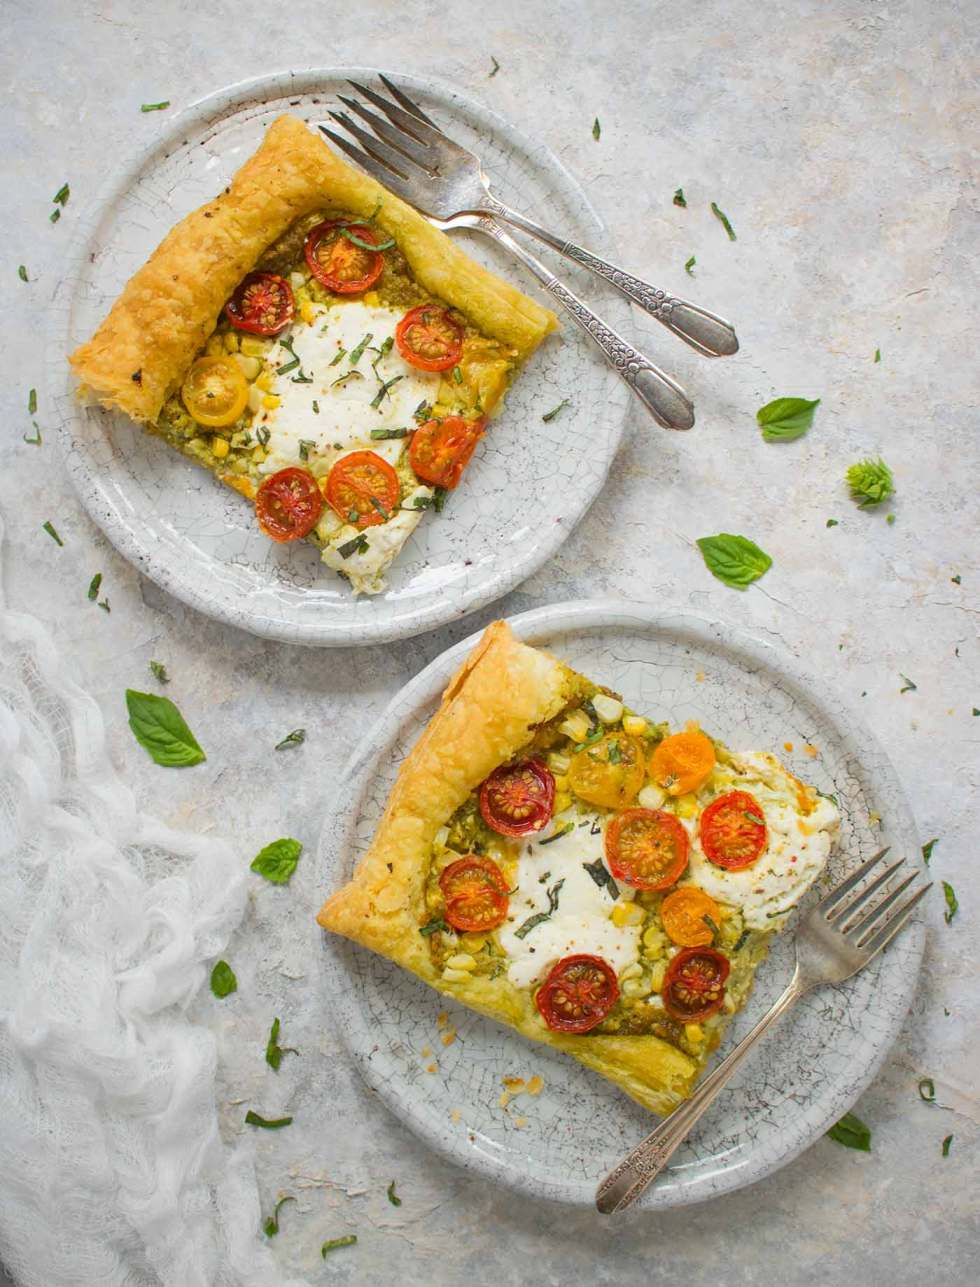 Two slices of tomato corn tart, ready to eat